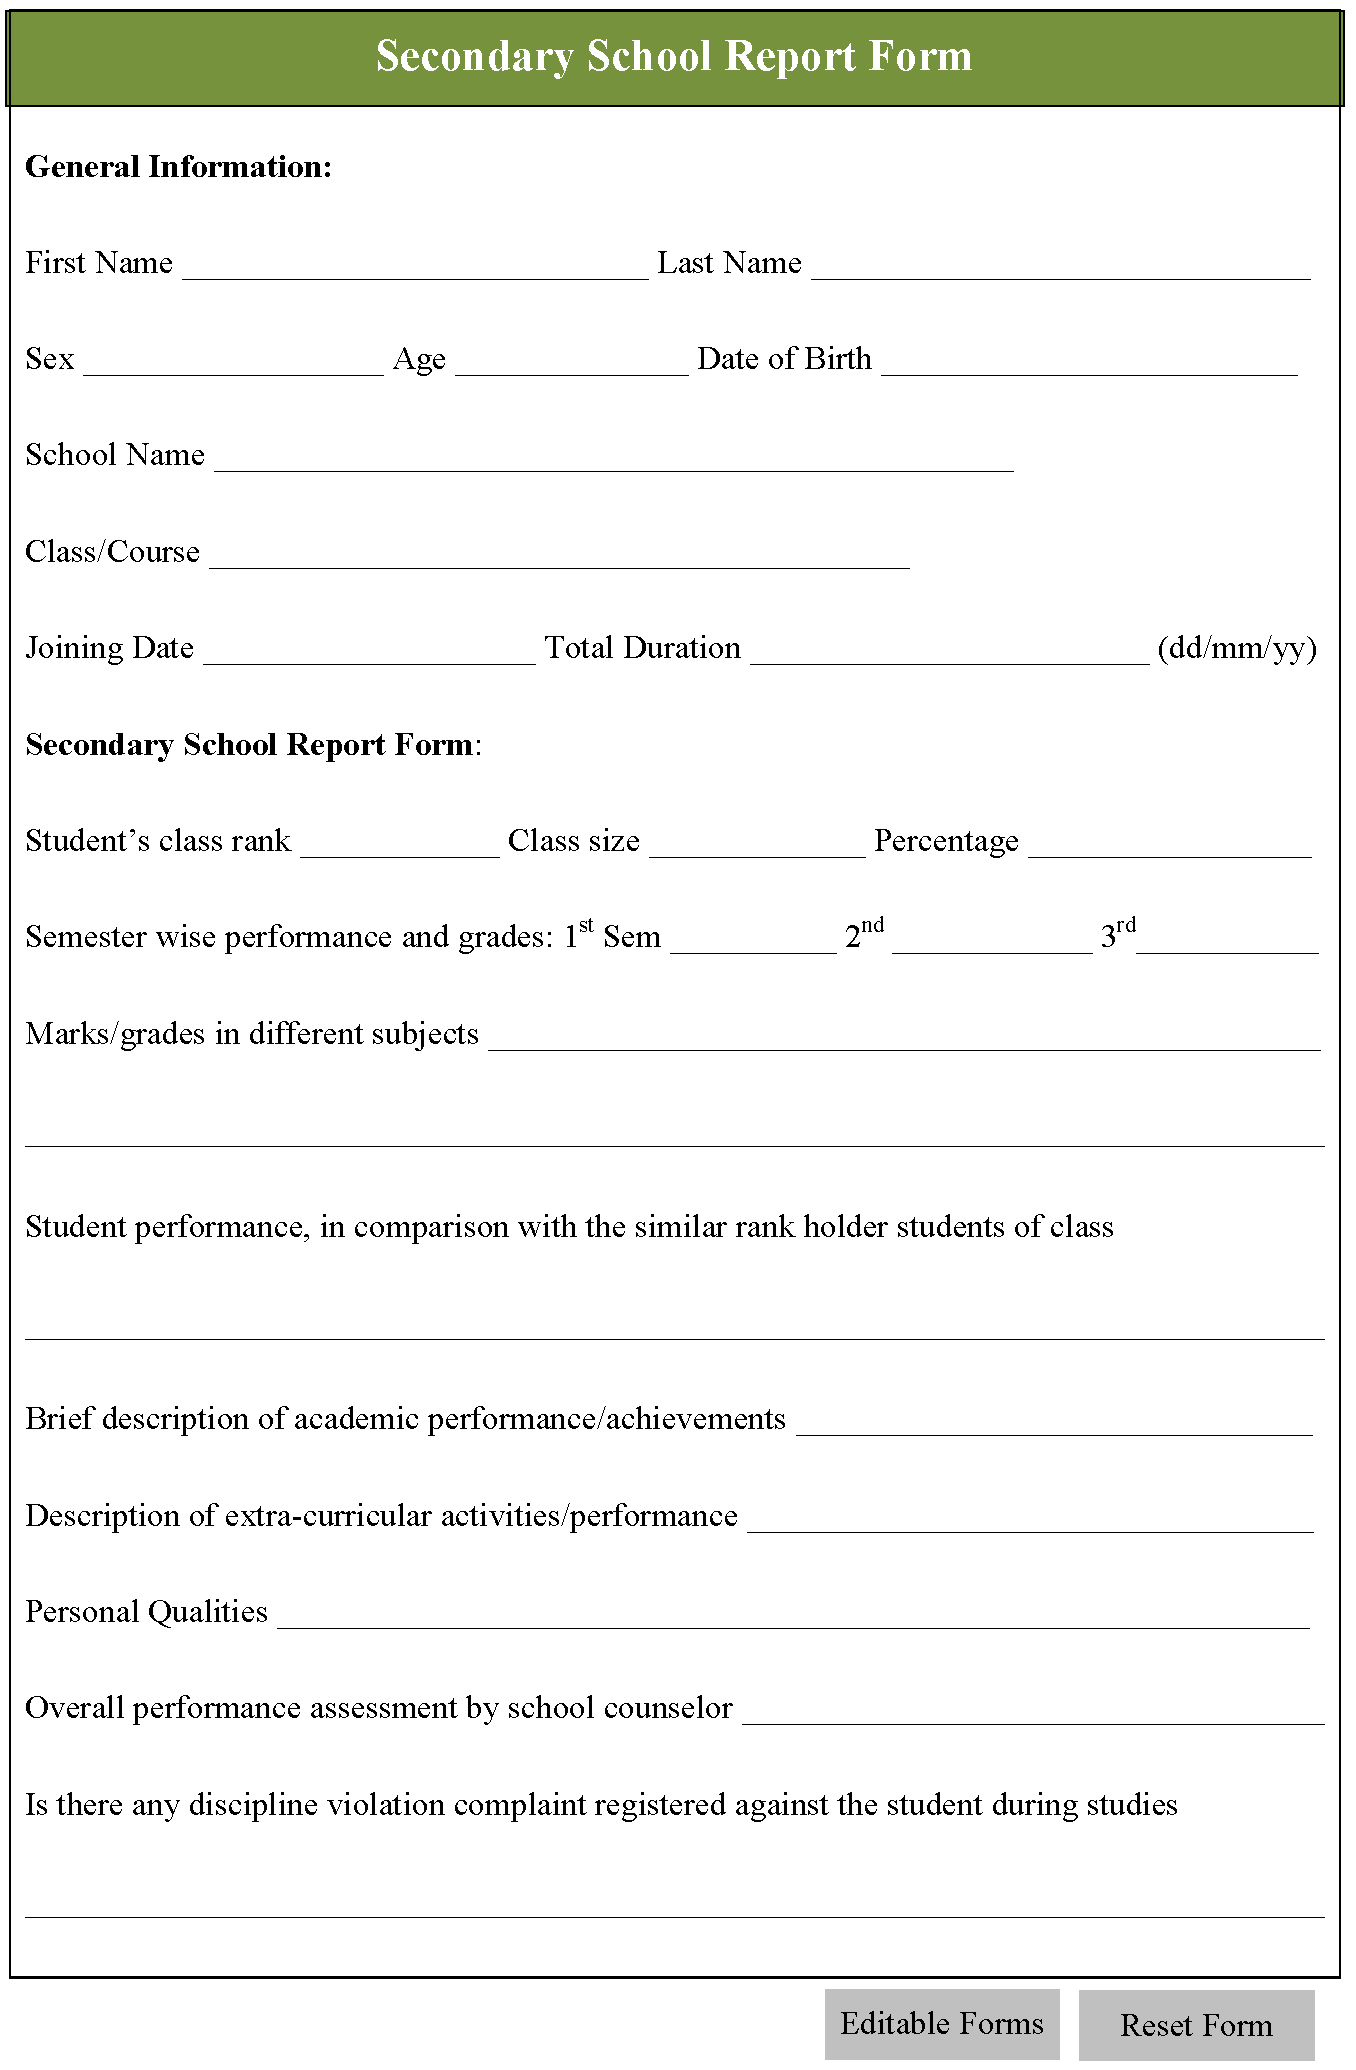 Secondary School Report Form